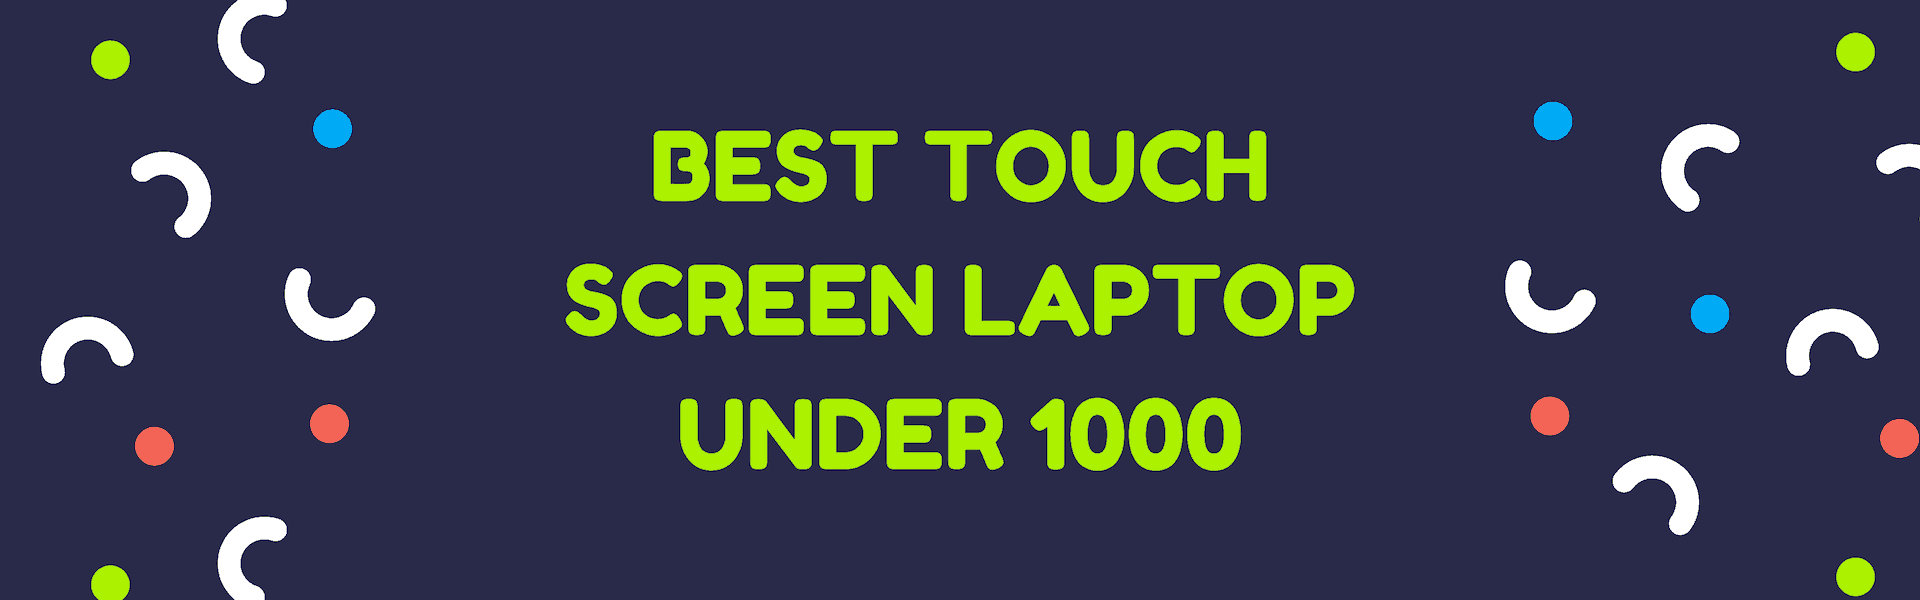 best touch screen laptop under 1000